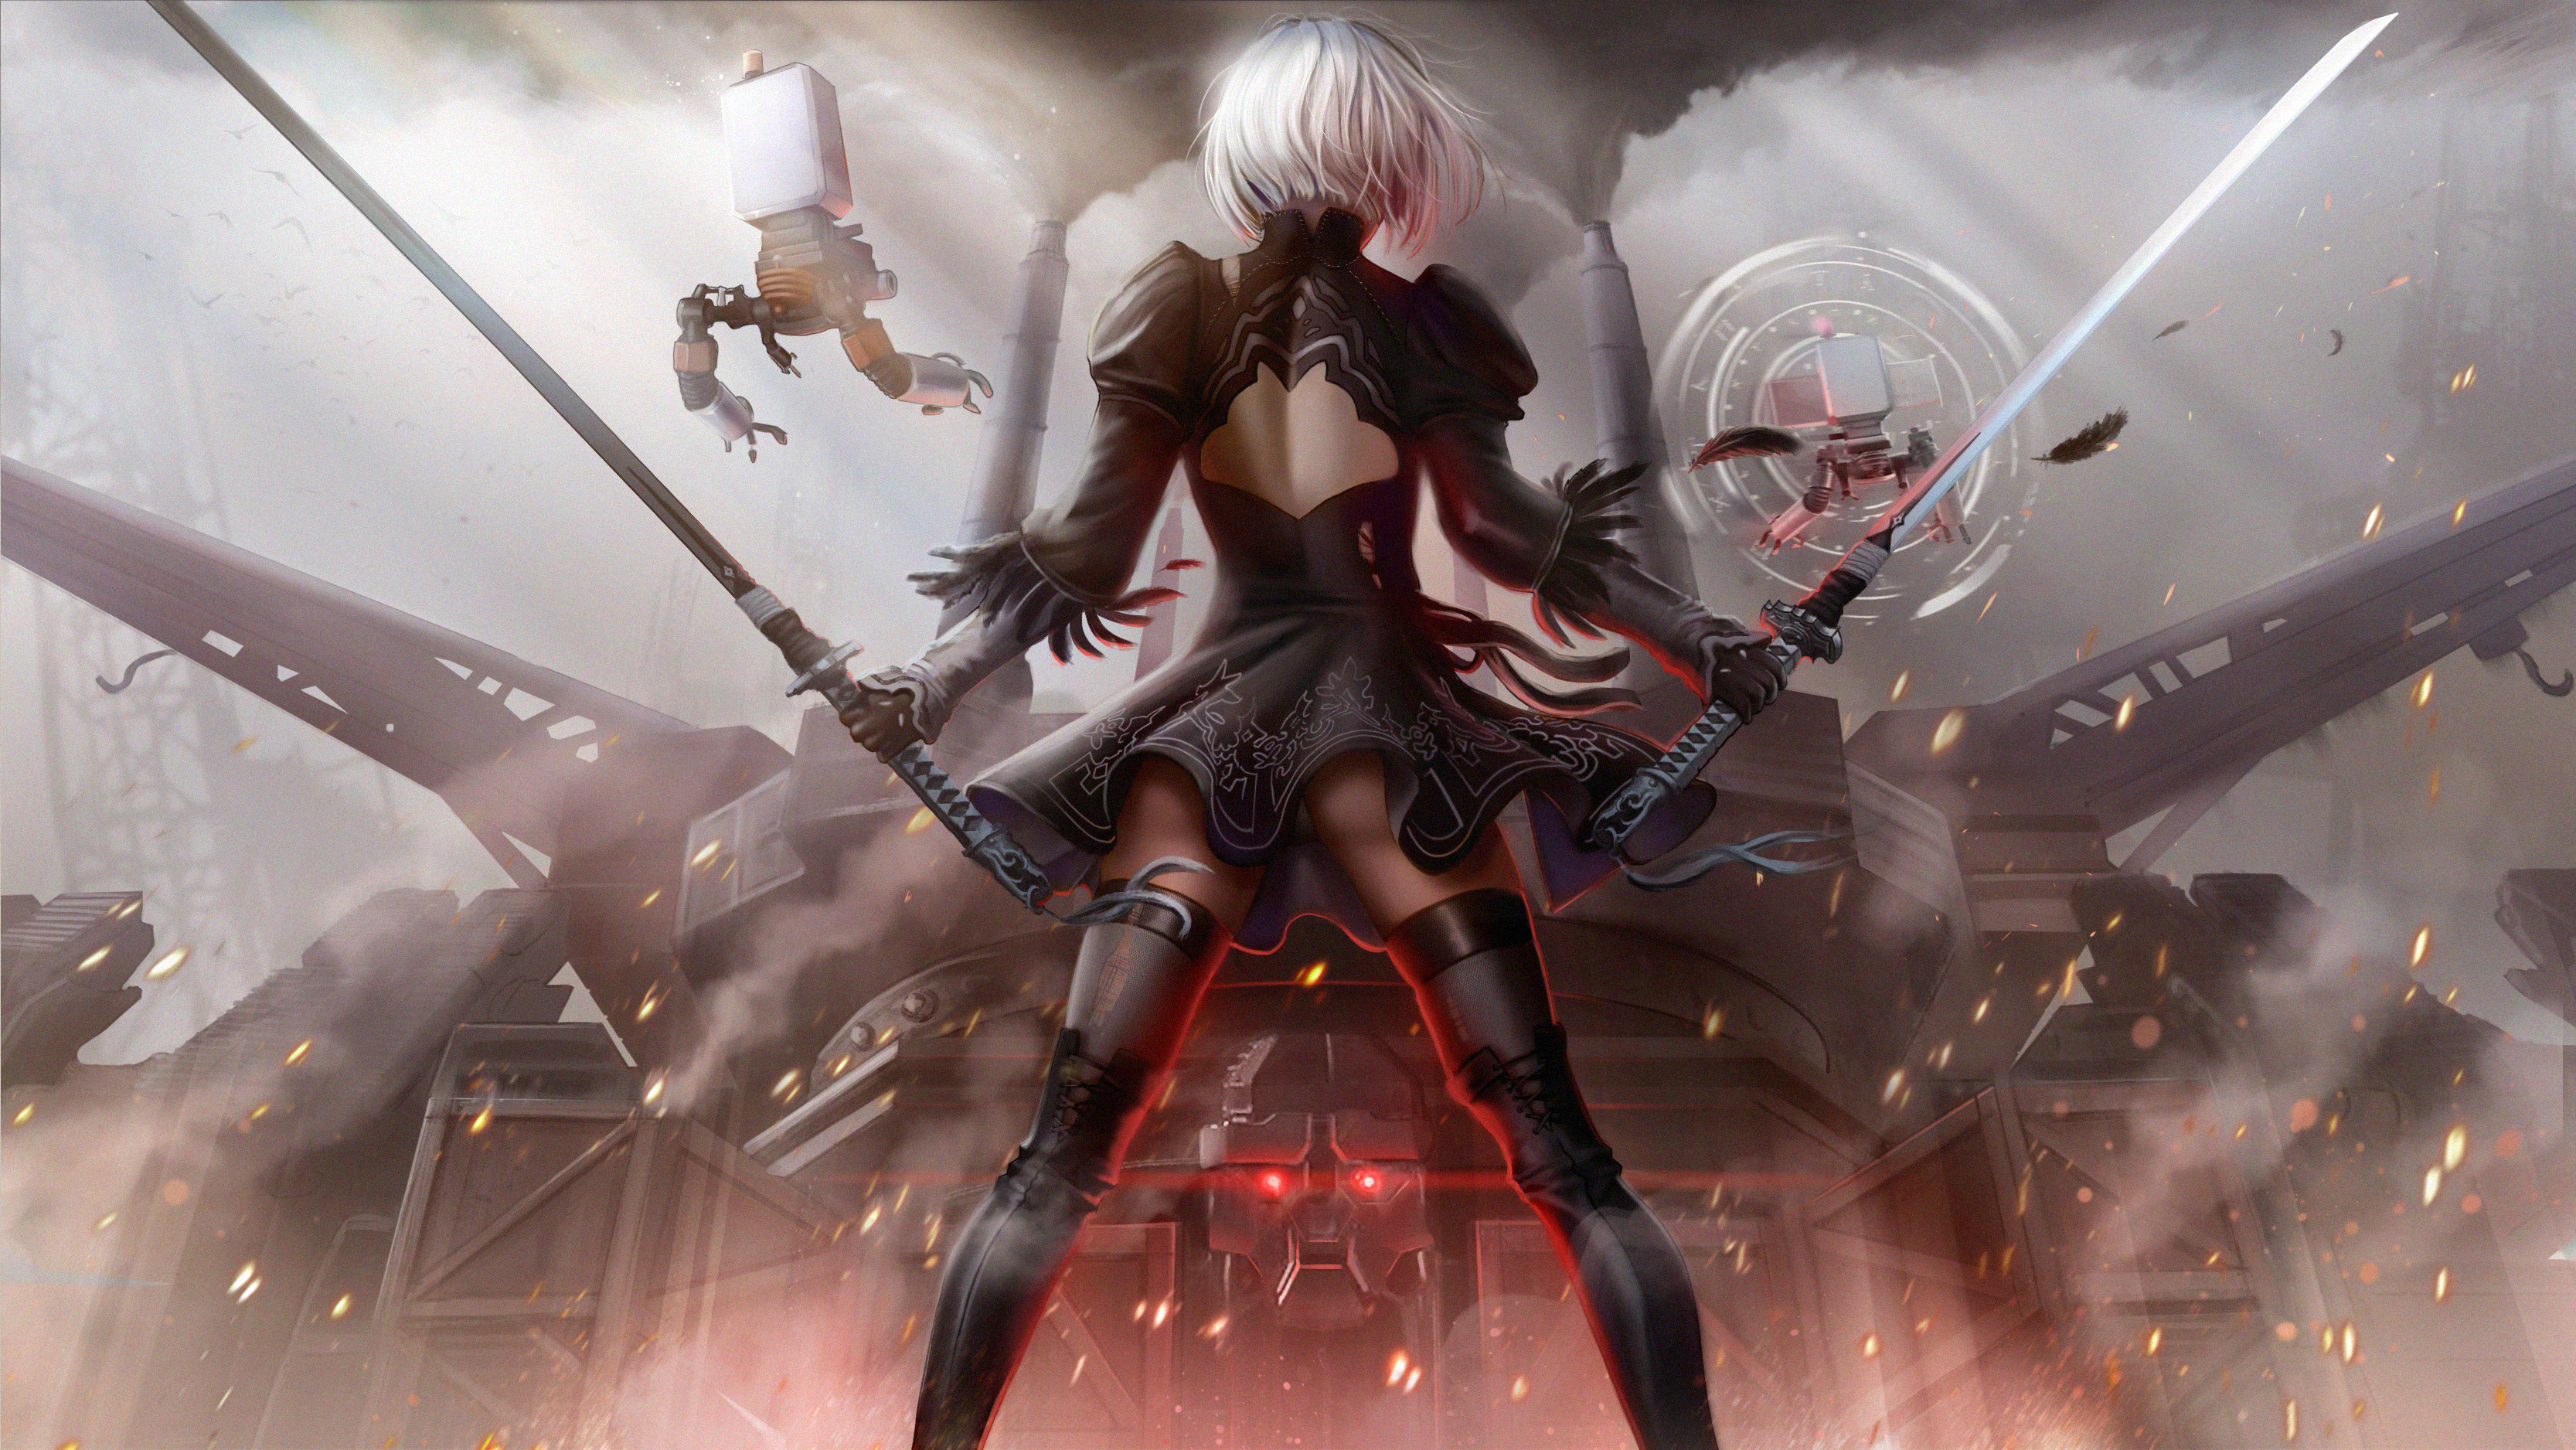 Nier Automata Fantasy Game Art Full Hd Wallpaper: 2560x1080 2B NieR Automata Art 2560x1080 Resolution HD 4k